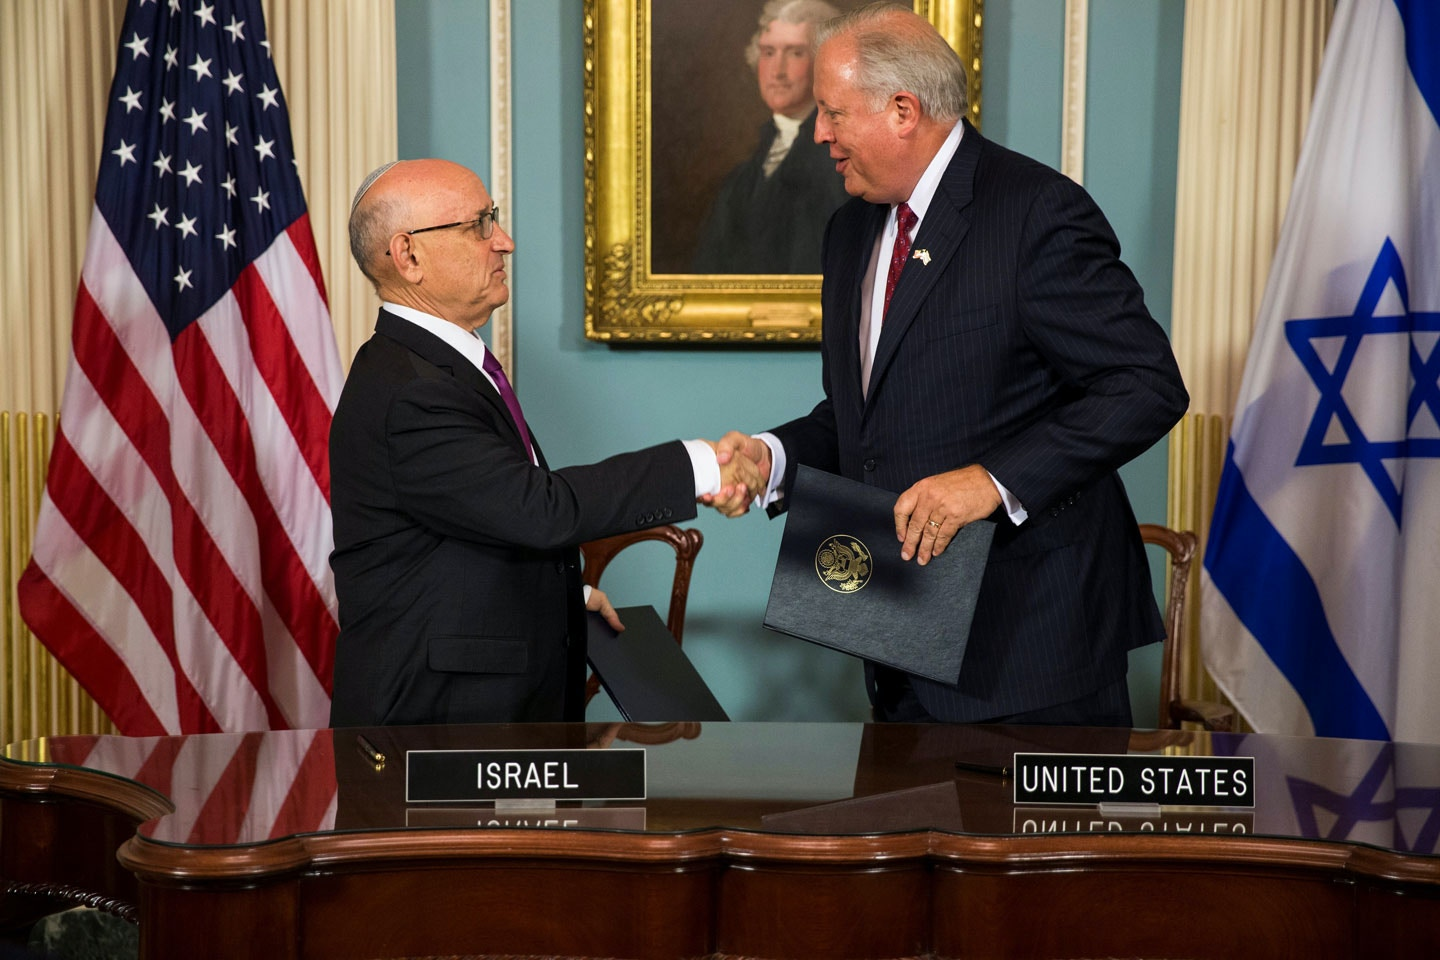 WASHINGTON, USA - SEPTEMBER 14 :  Jacob Nagel (L), Israel's acting National Security Advisor, and Tom Shannon (R), U.S. Undersecretary of State, exchange the agreements during a signing ceremony for the new 10-year defense assistance pact between the US and Israel at the Department of State in Washington, USA on September 14, 2016. (Photo by Samuel Corum/Anadolu Agency/Getty Images)